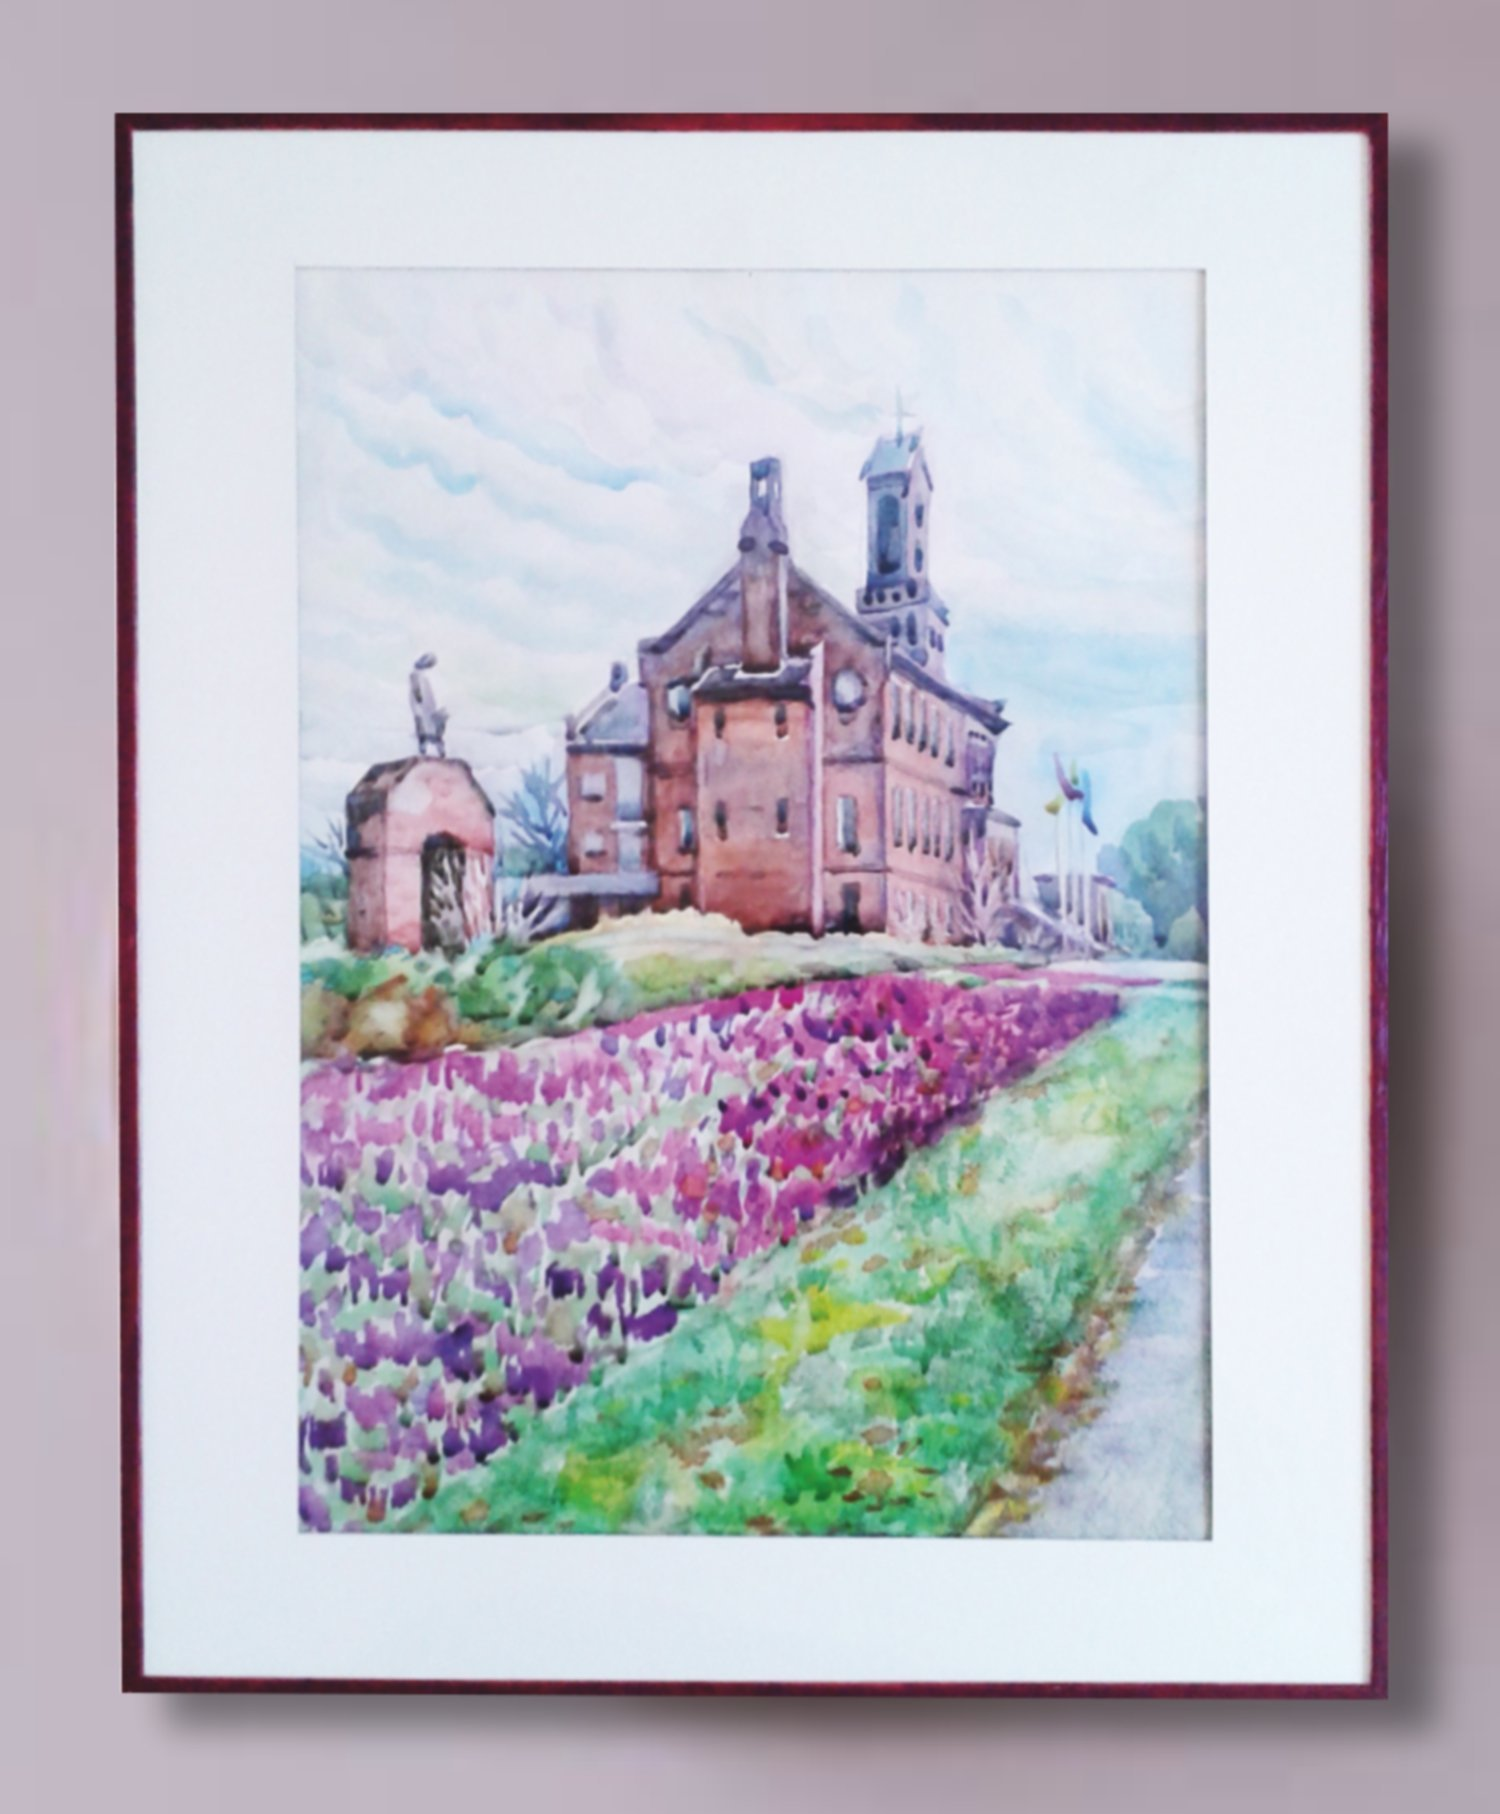 Zaure Kadyke; Spring In Netherland, 2018, Original Watercolor, 11.6 x 16.4 inches. Artwork description: 241 purple, Municipality, spring, town, woman, church, clouds, Winterswijk, flowers, grass, lilac, monument...